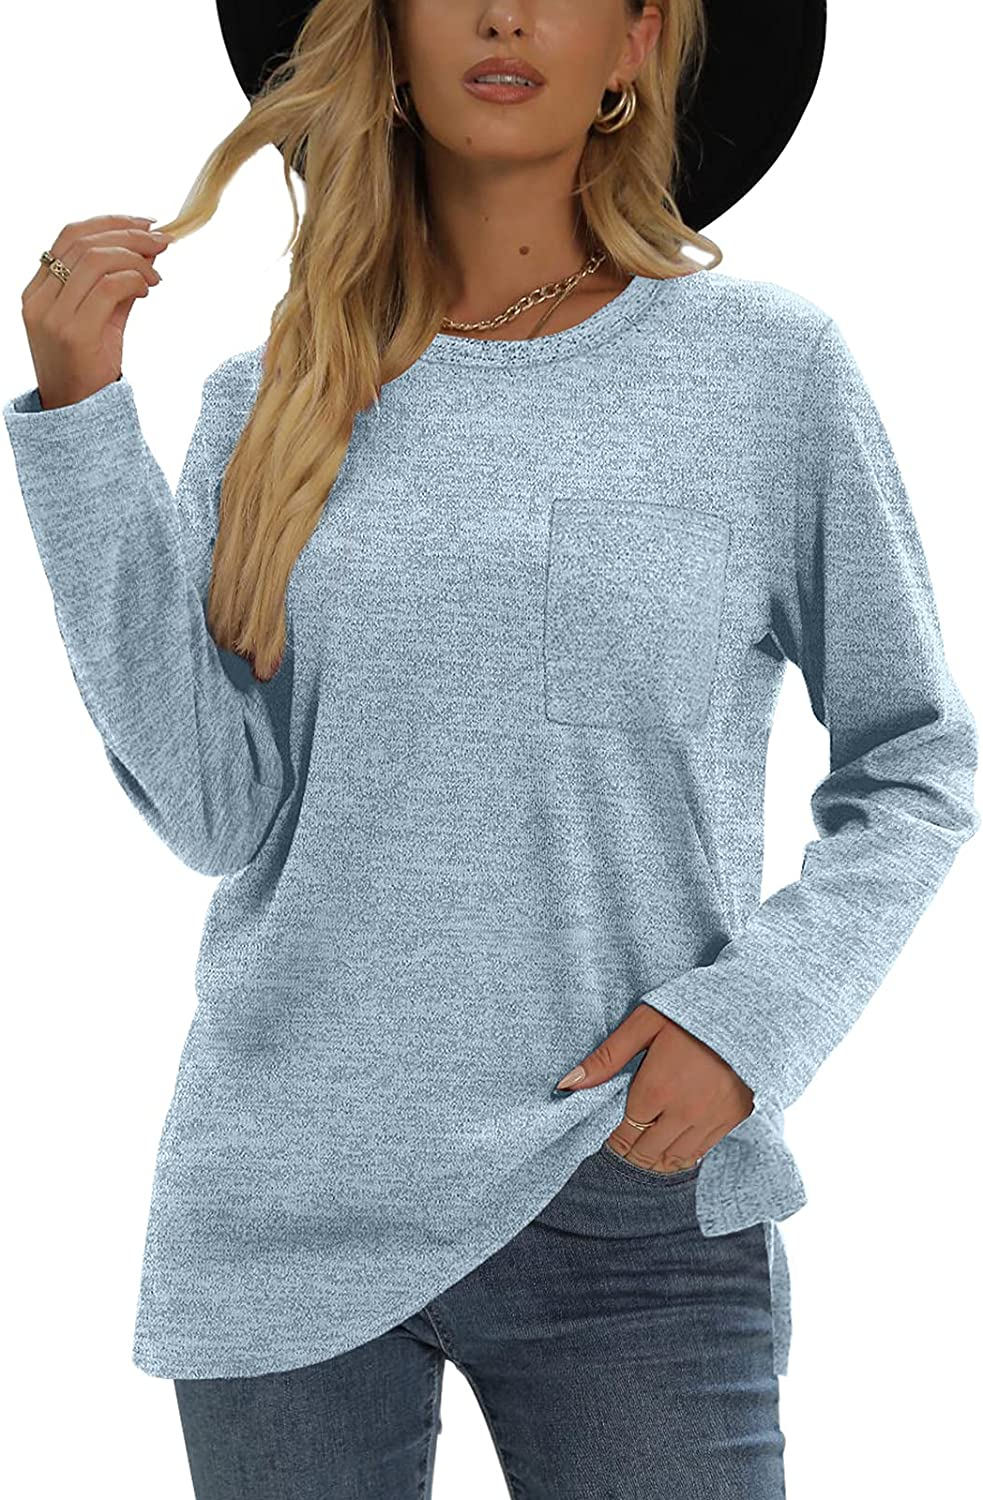 XIEERDUO Colorado Springs Mall Long Sleeve Shirts Japan's largest assortment for Loose Women with Fit Sweatshirts